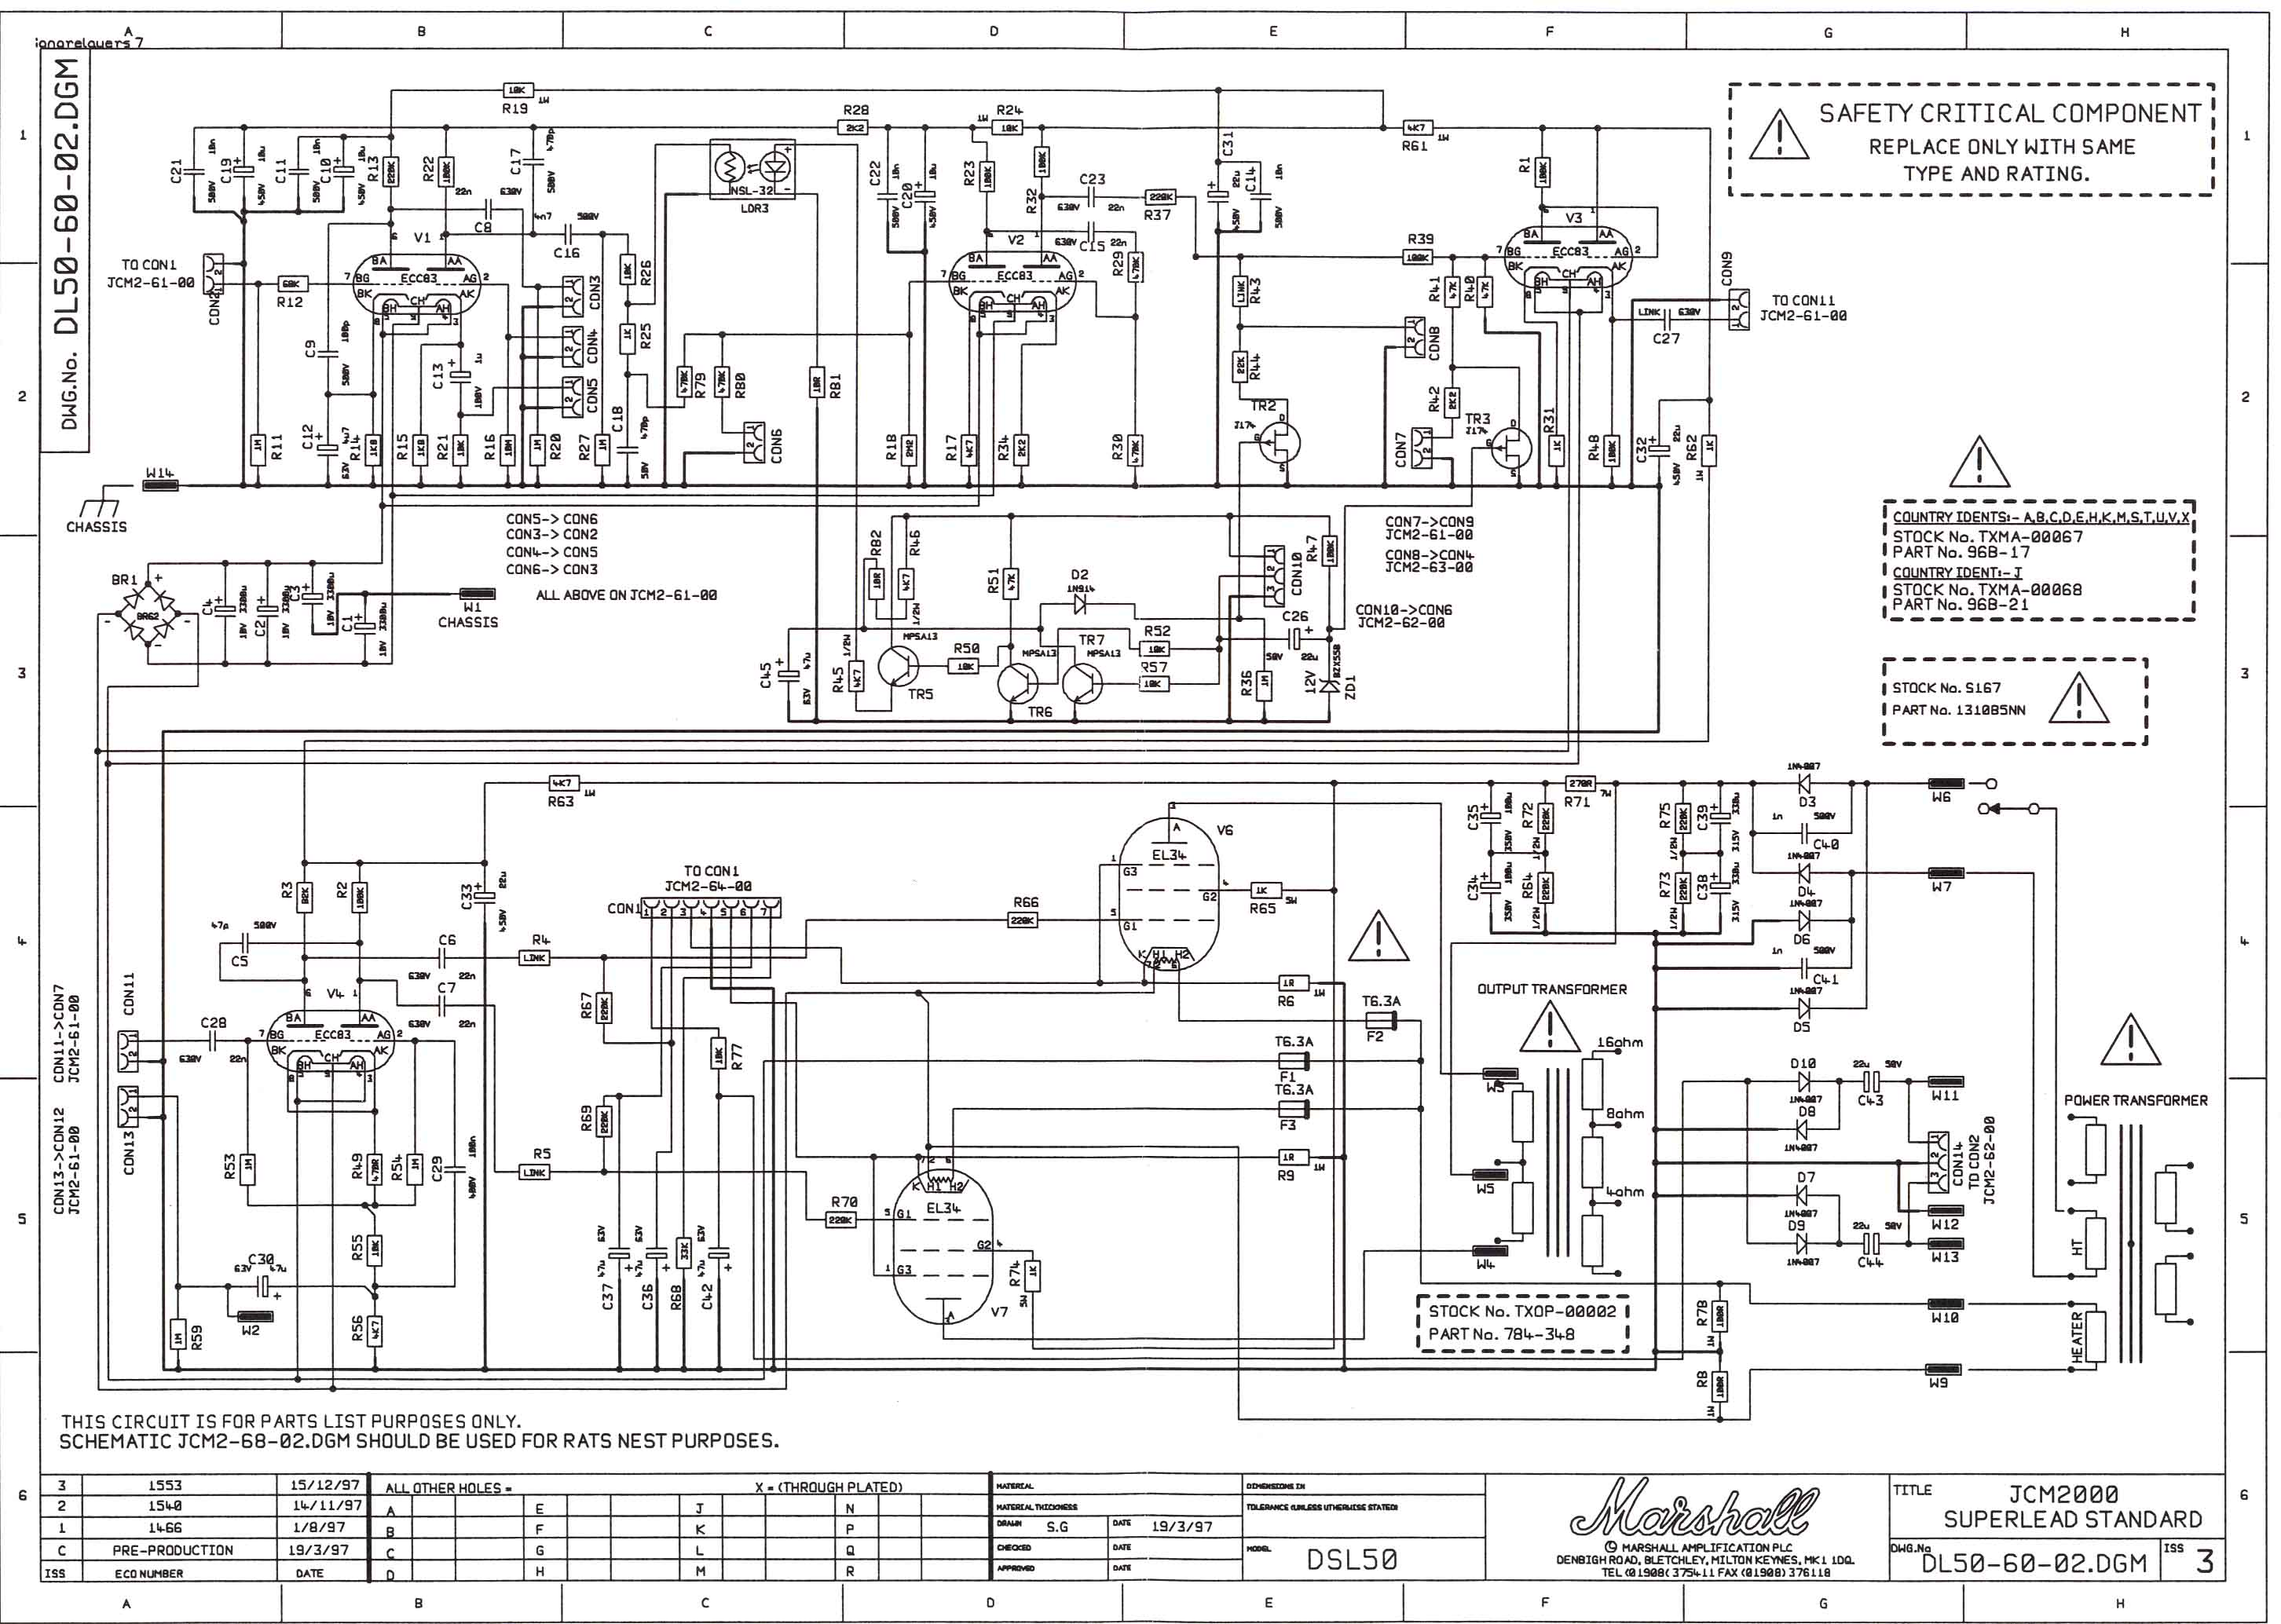 Marshall JCM2000 DSL50 Schematic www thetubestore com marshall amp schematics Marshall 2204 Kit at n-0.co